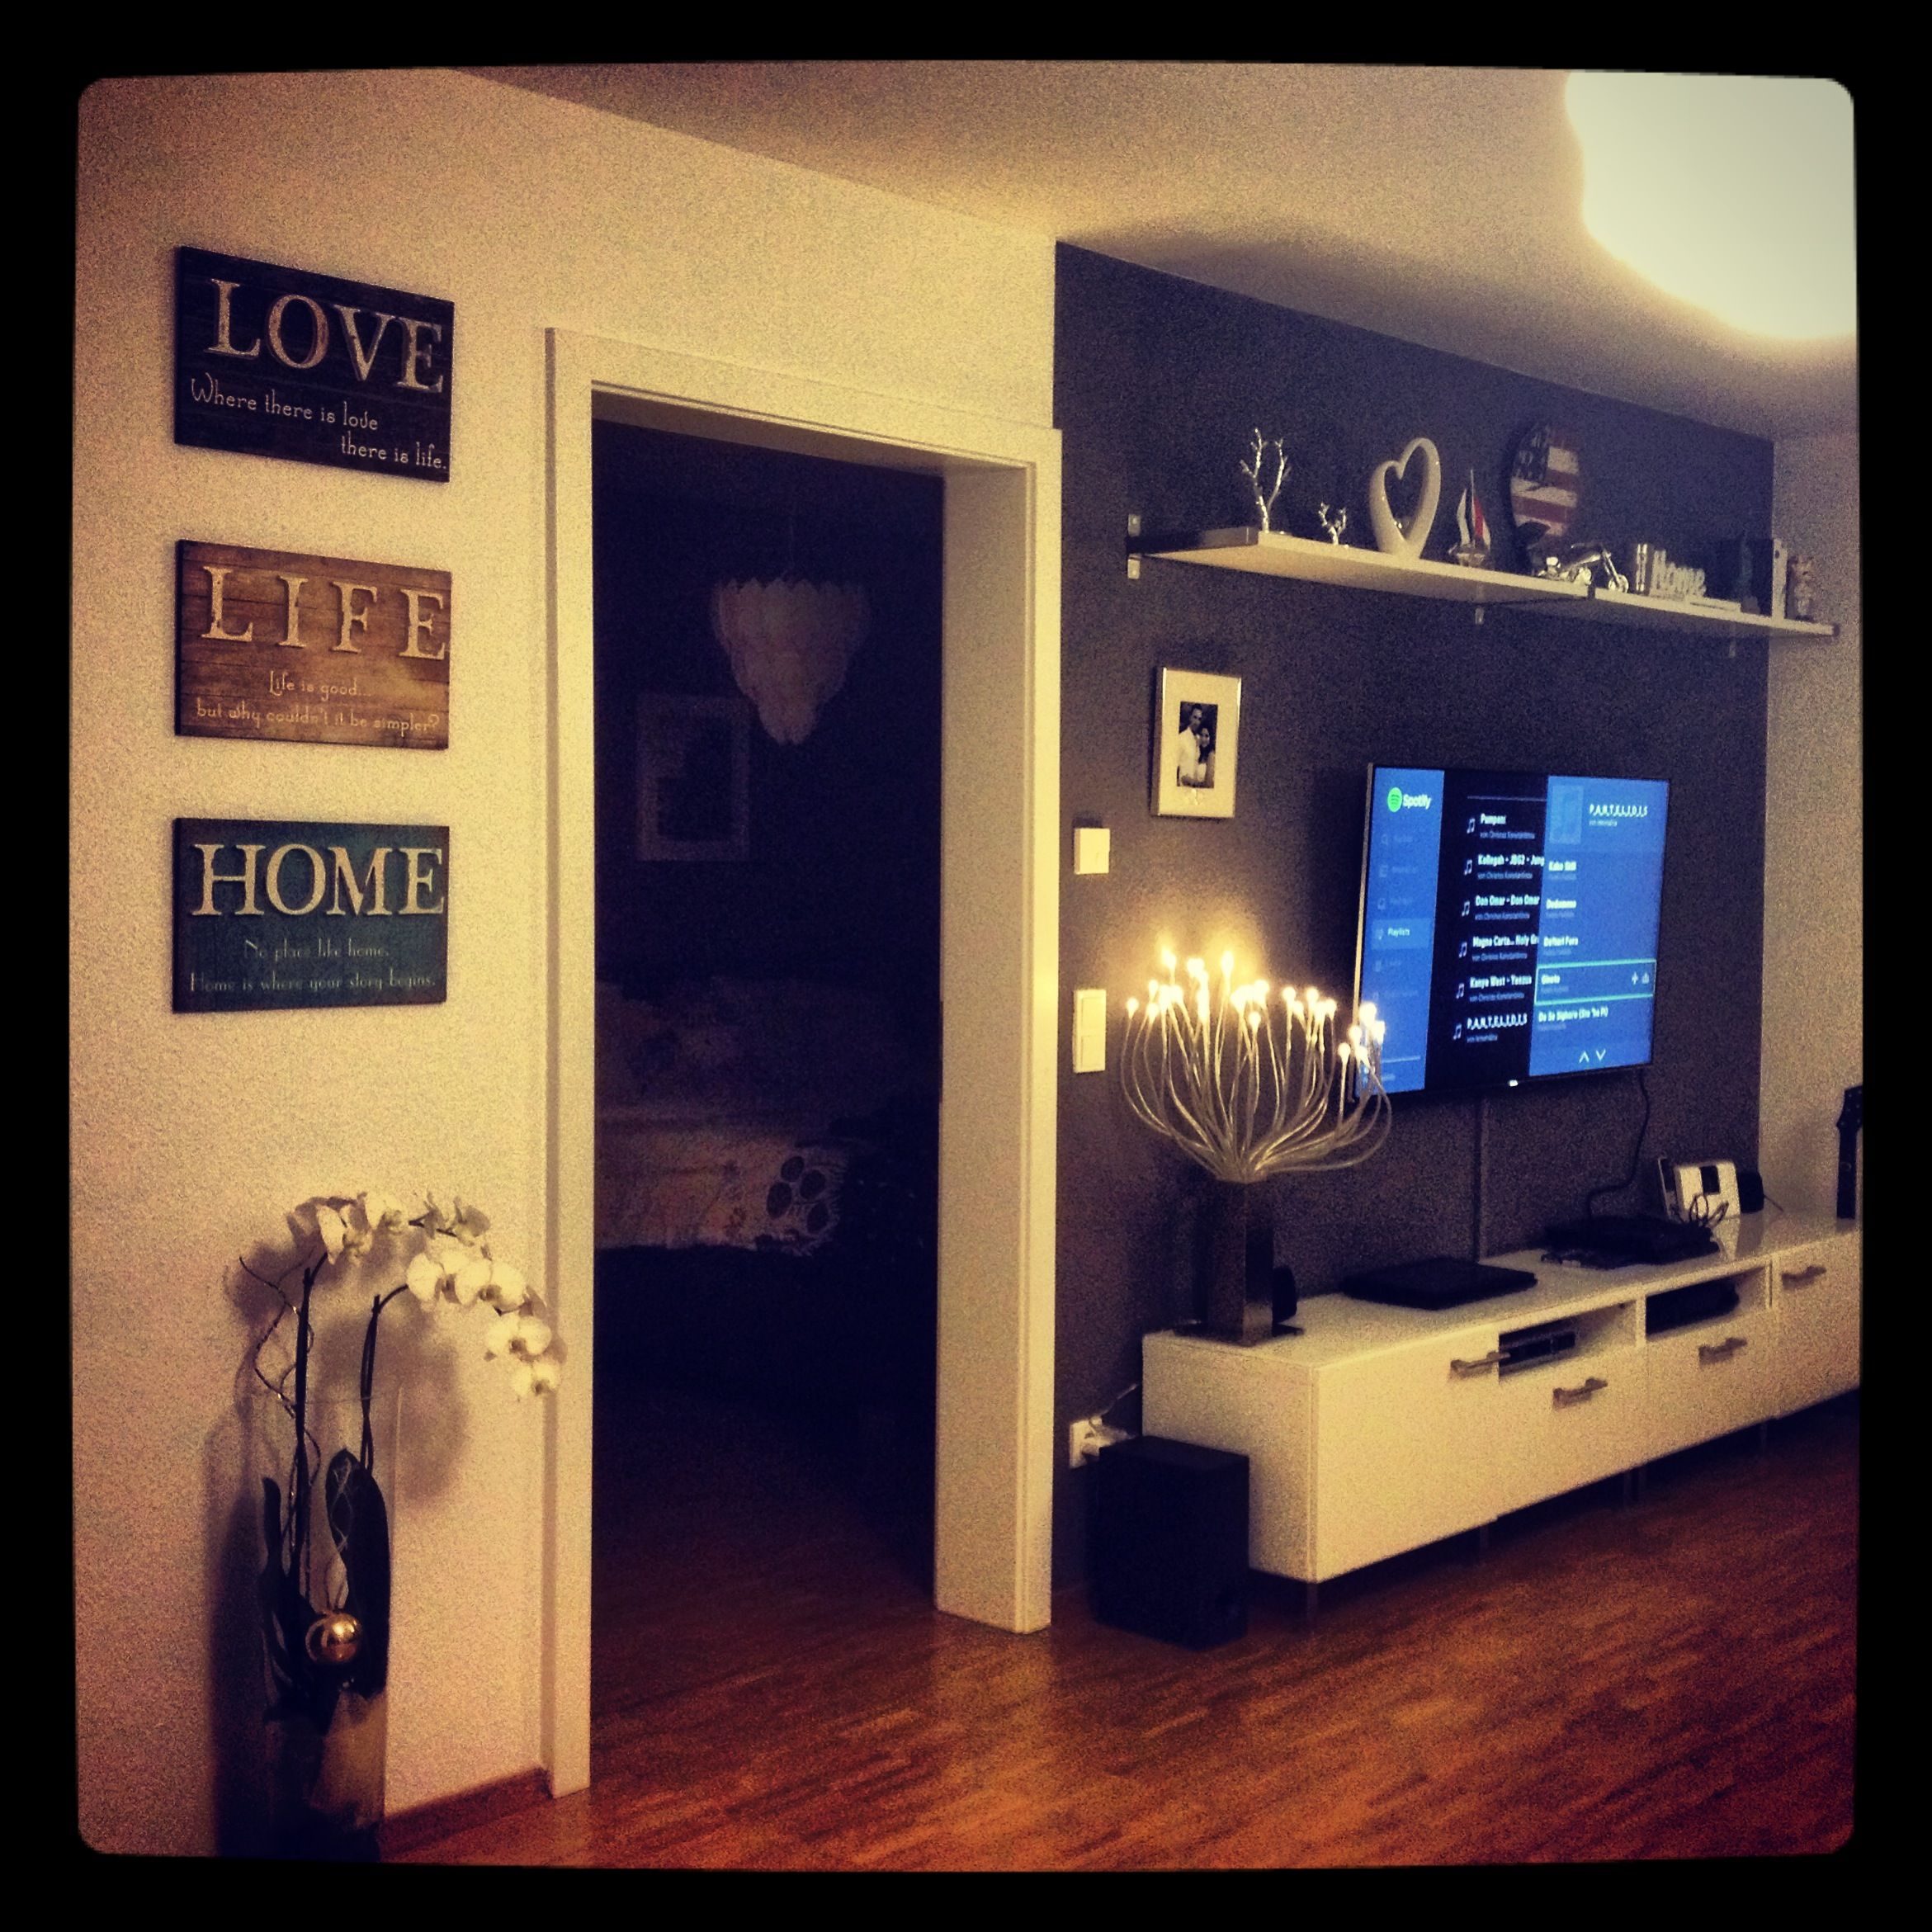 5 x 4 badezimmerdesigns myhomelovelivelovelypictures  home sweet home  pinterest